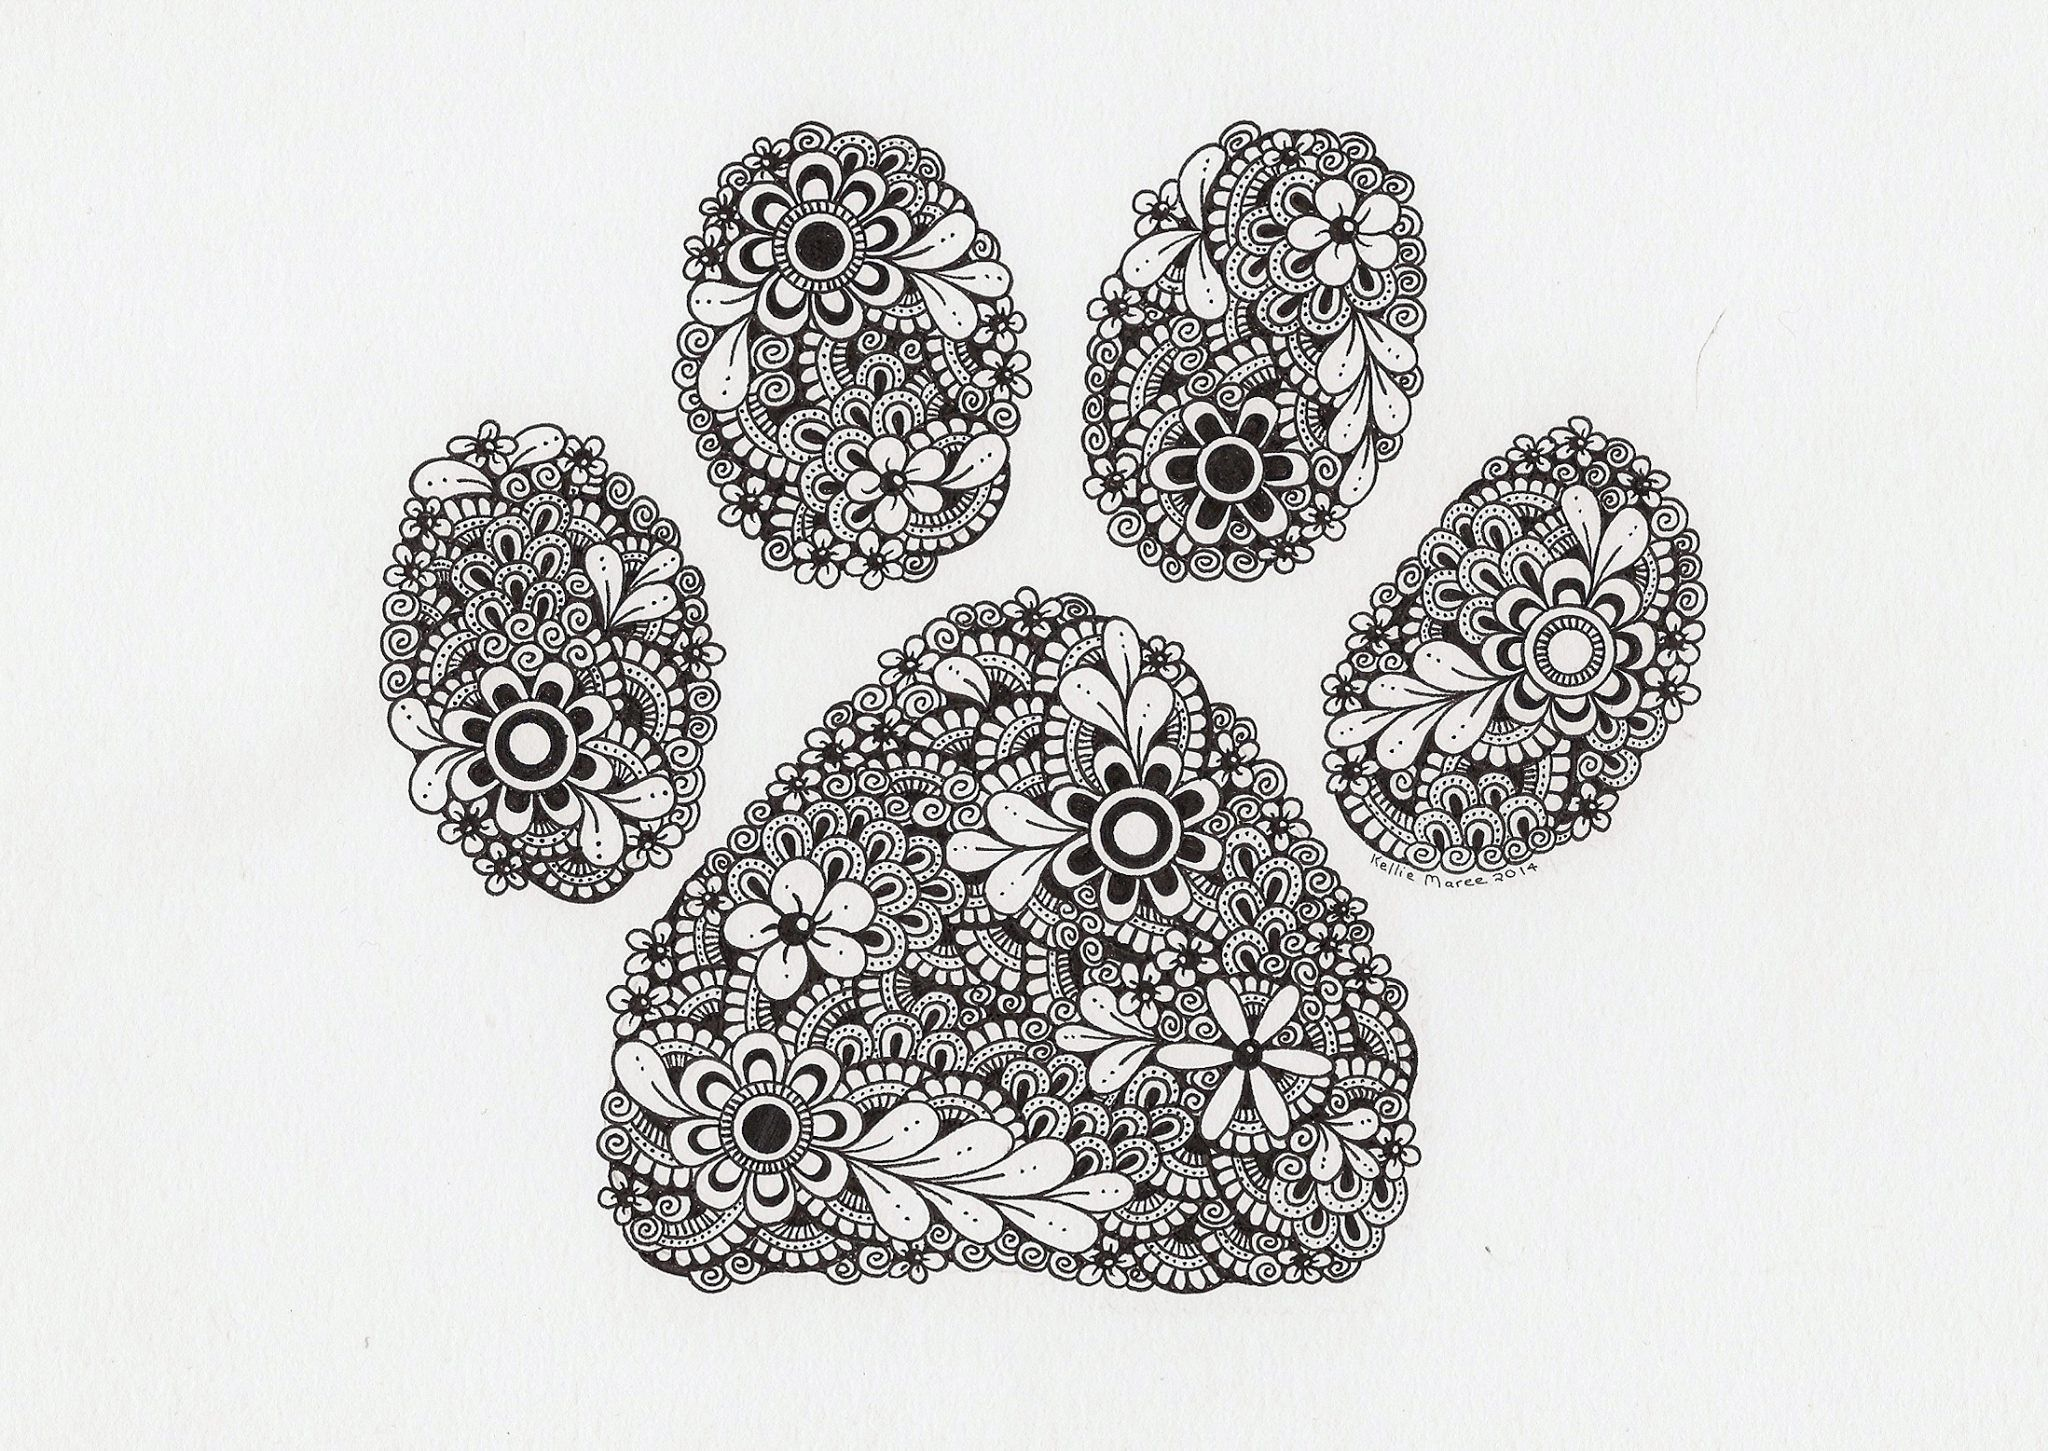 Mandalas Para Colorear Con Animales Y Zentangles: Pin By To TheLimit On Zentangle